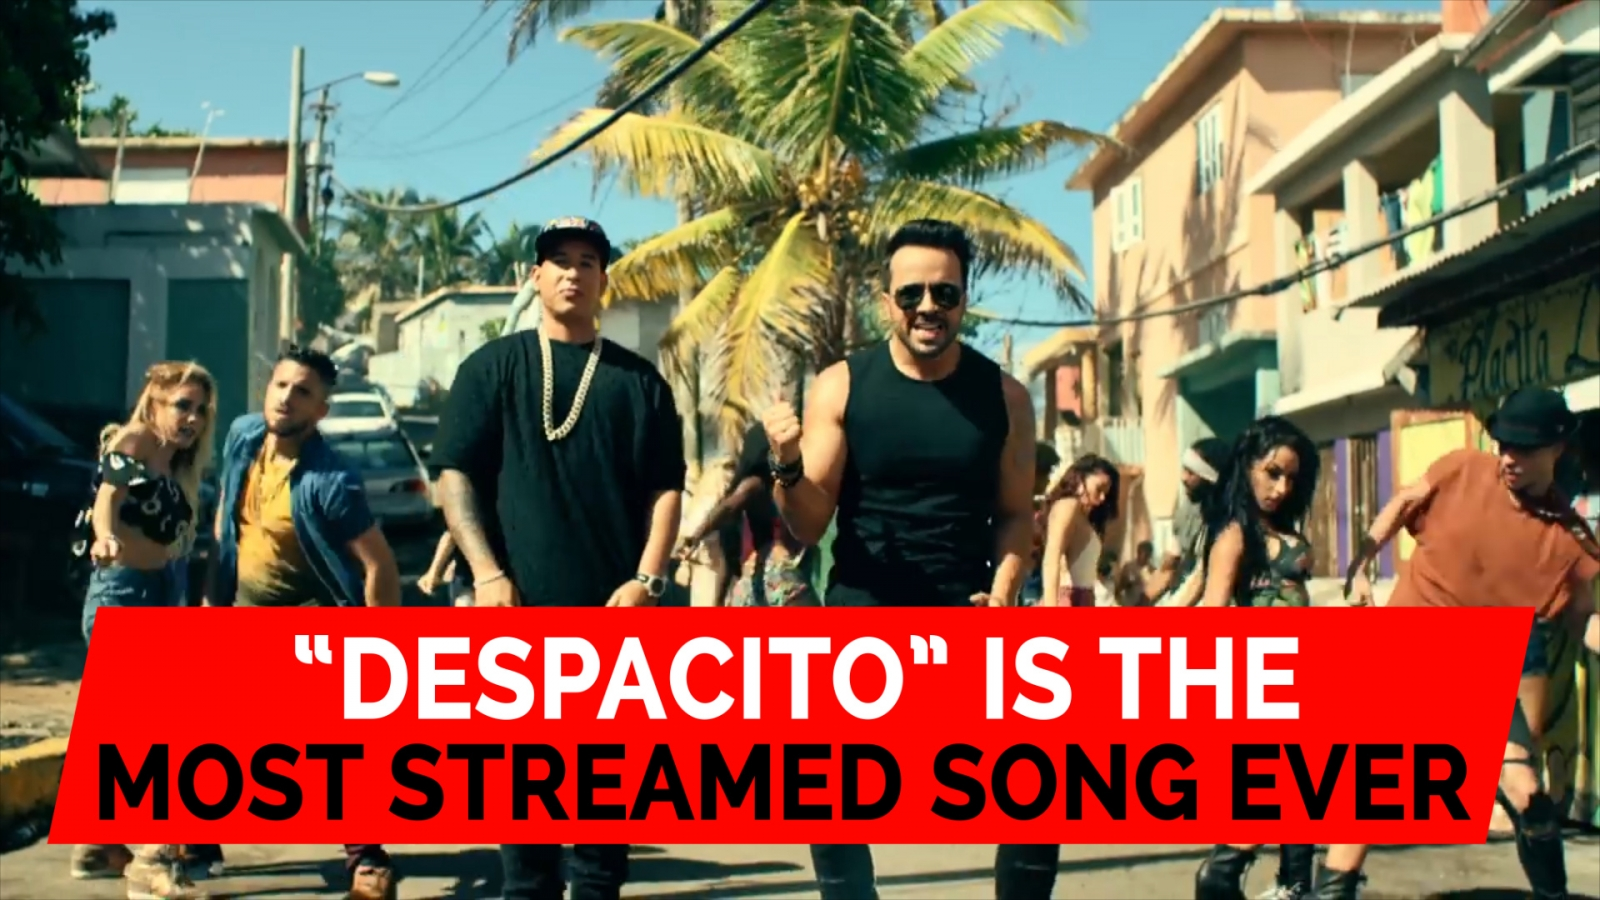 despacito-is-the-most-streamed-song-ever